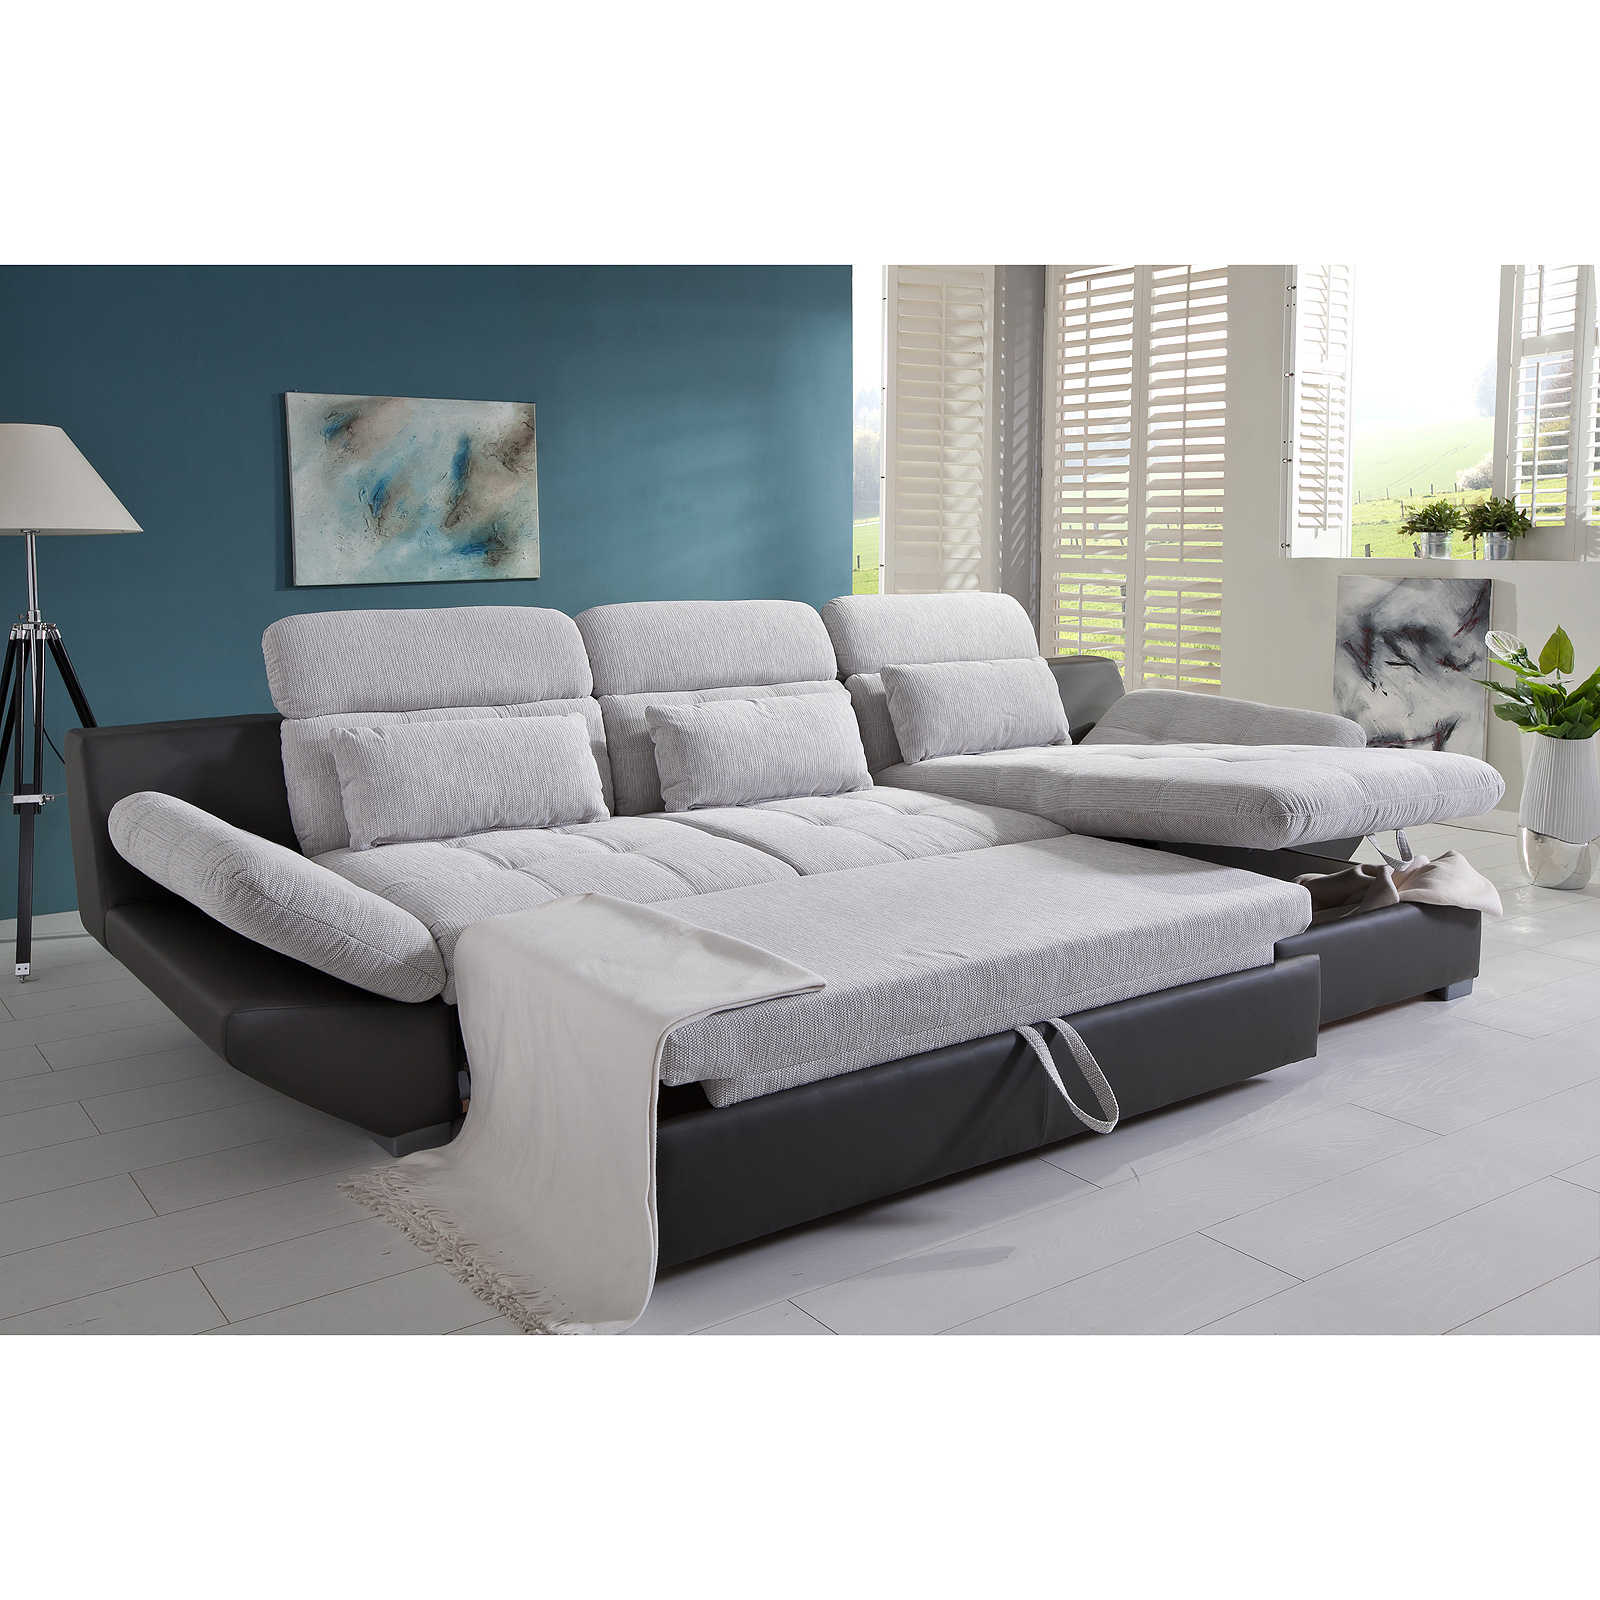 ecksofa angebot four two products br hl sippold gmbh